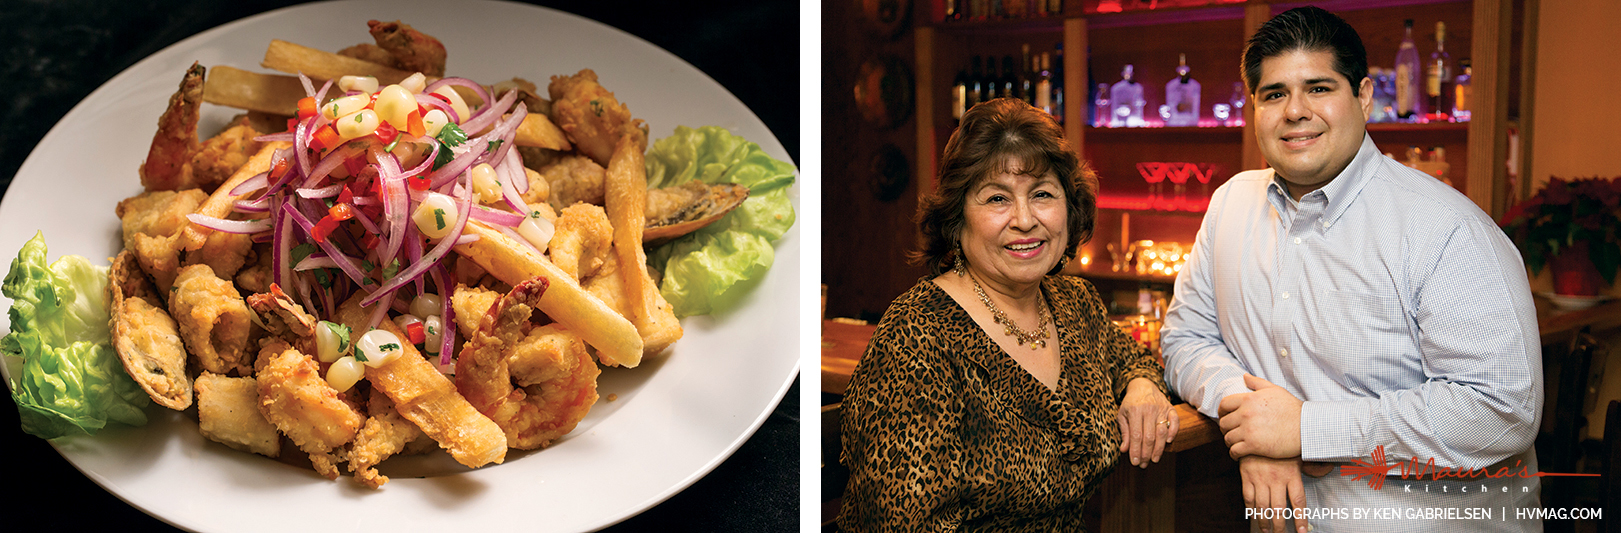 peruvian food is on fire right now - hvmag - maura's kitchen